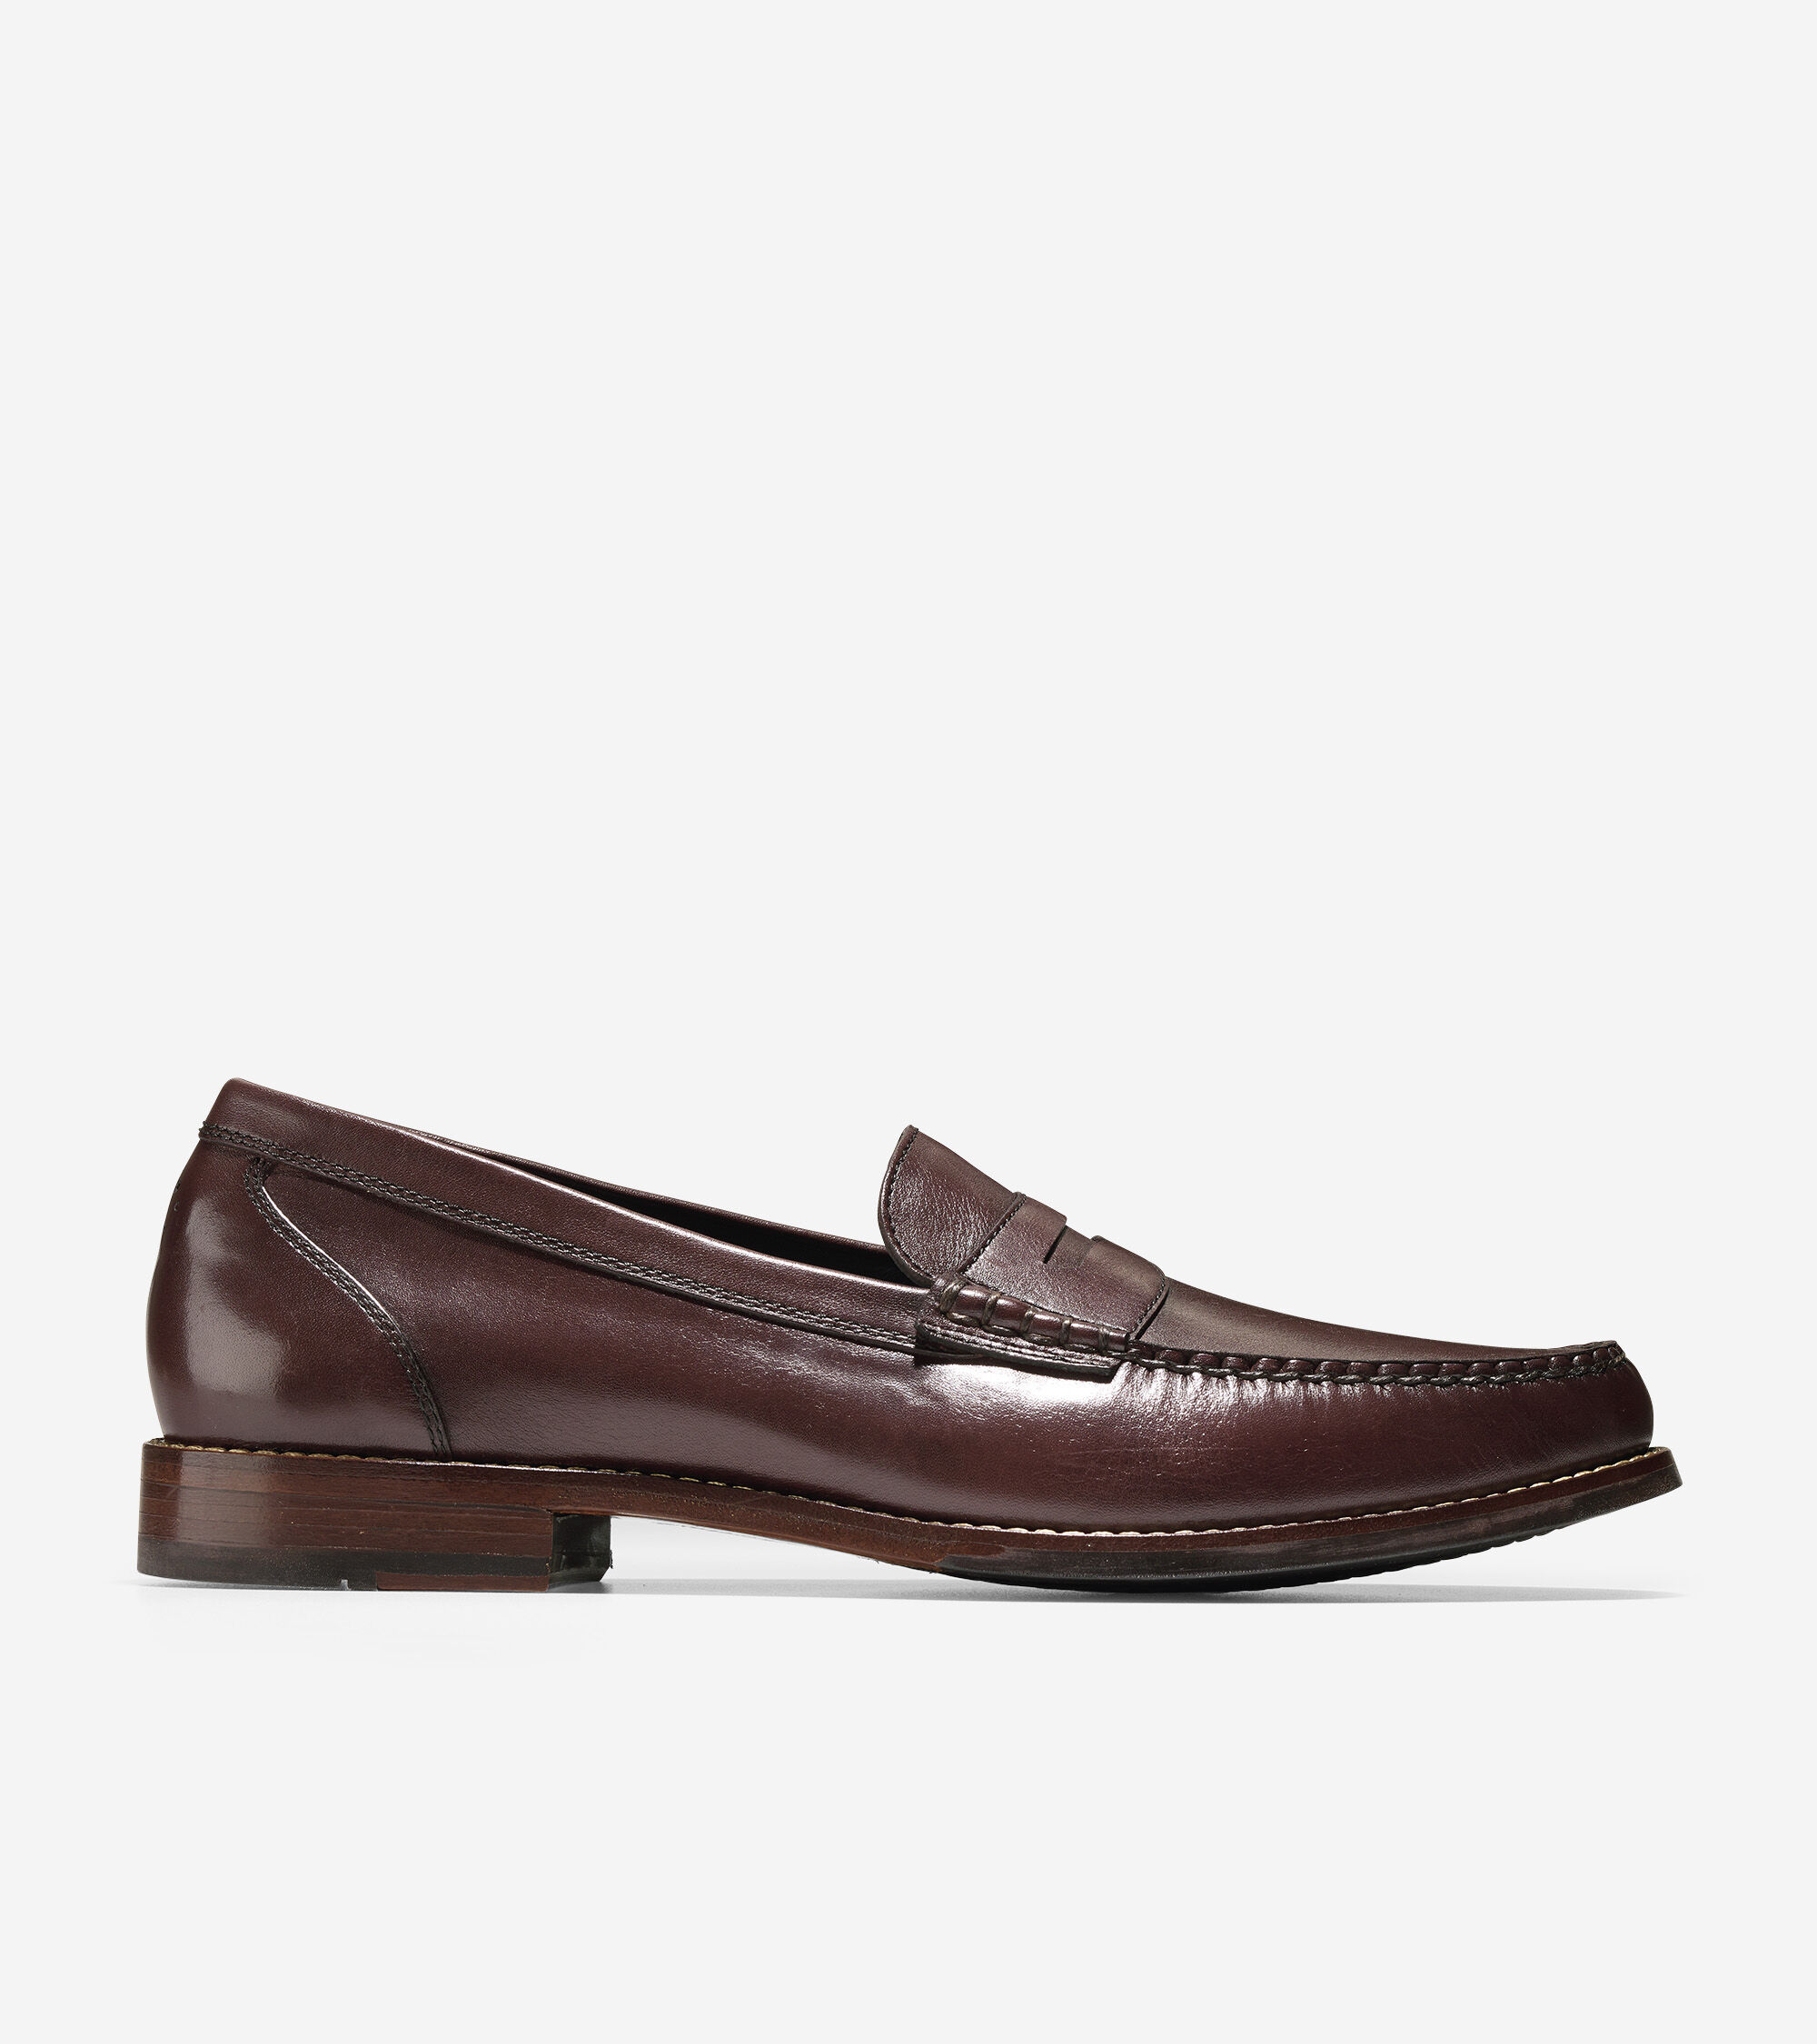 bd819463650 Men s Pinch Grand Classic Penny Loafers in Mahogany